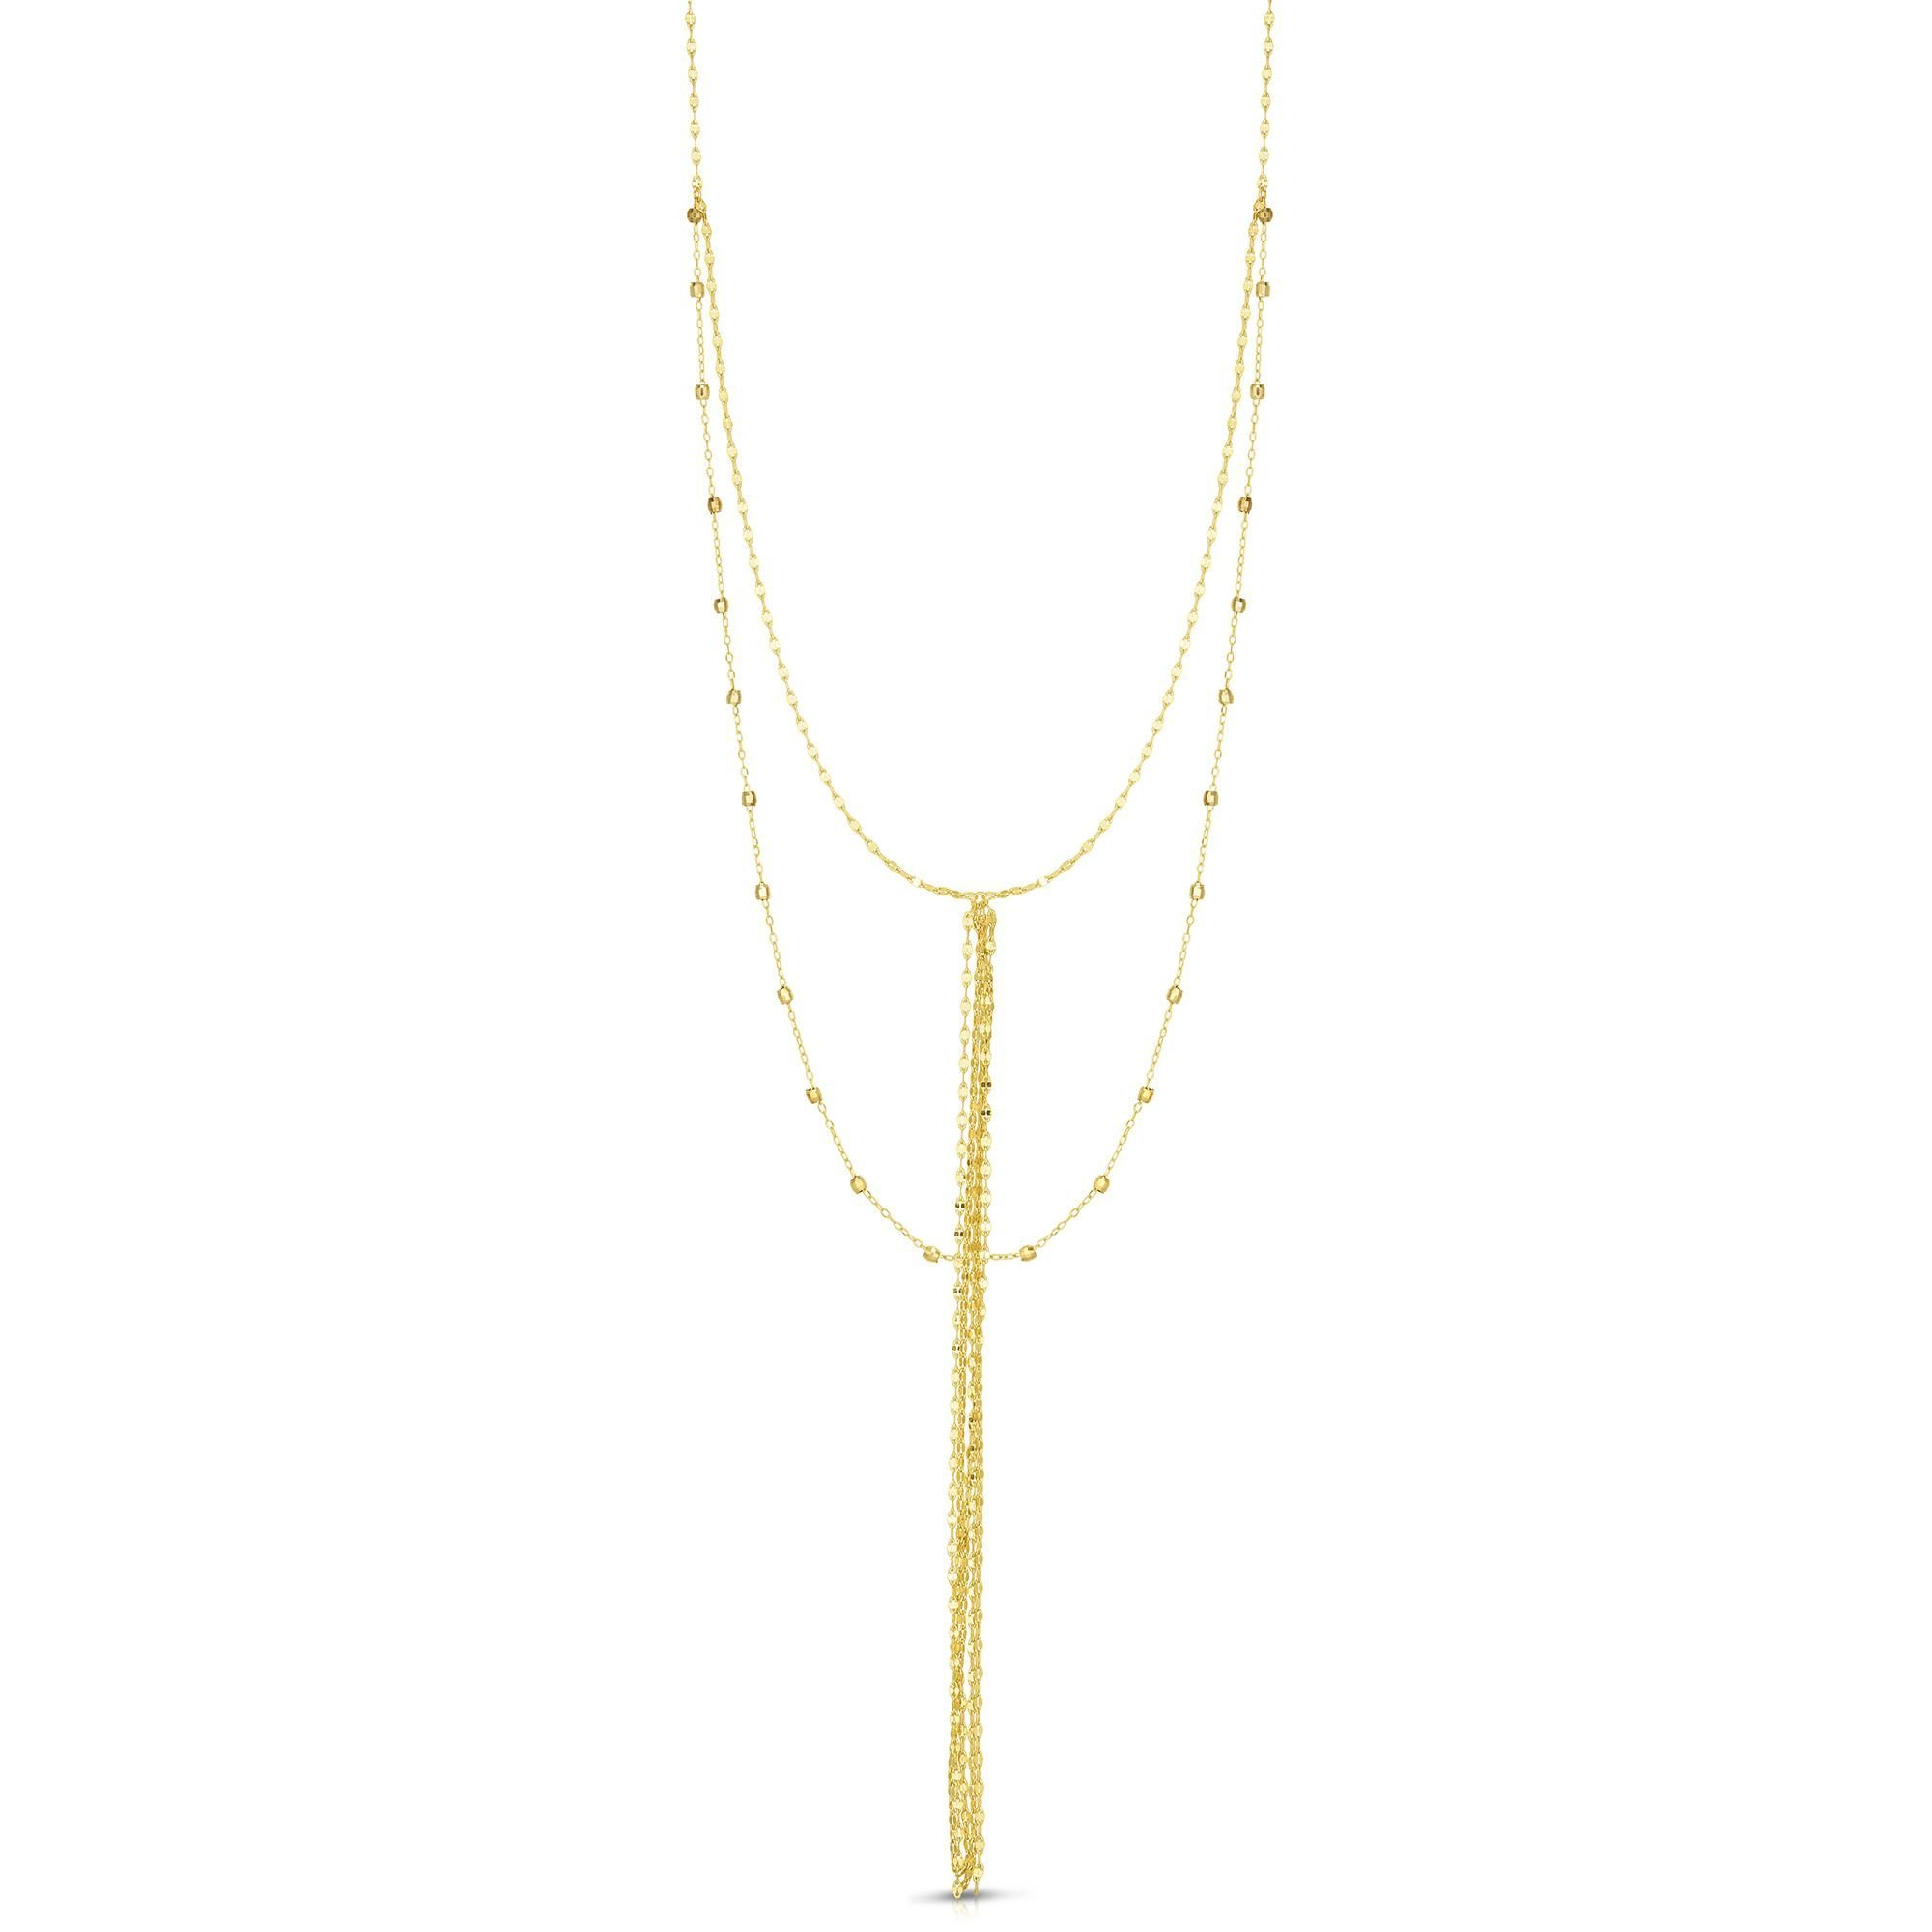 14k Yellow Gold Double Layer Diamond Cut Beads Tassel Lariat Necklace, Adjustable 16''-18'' by Beauniq (Image #1)